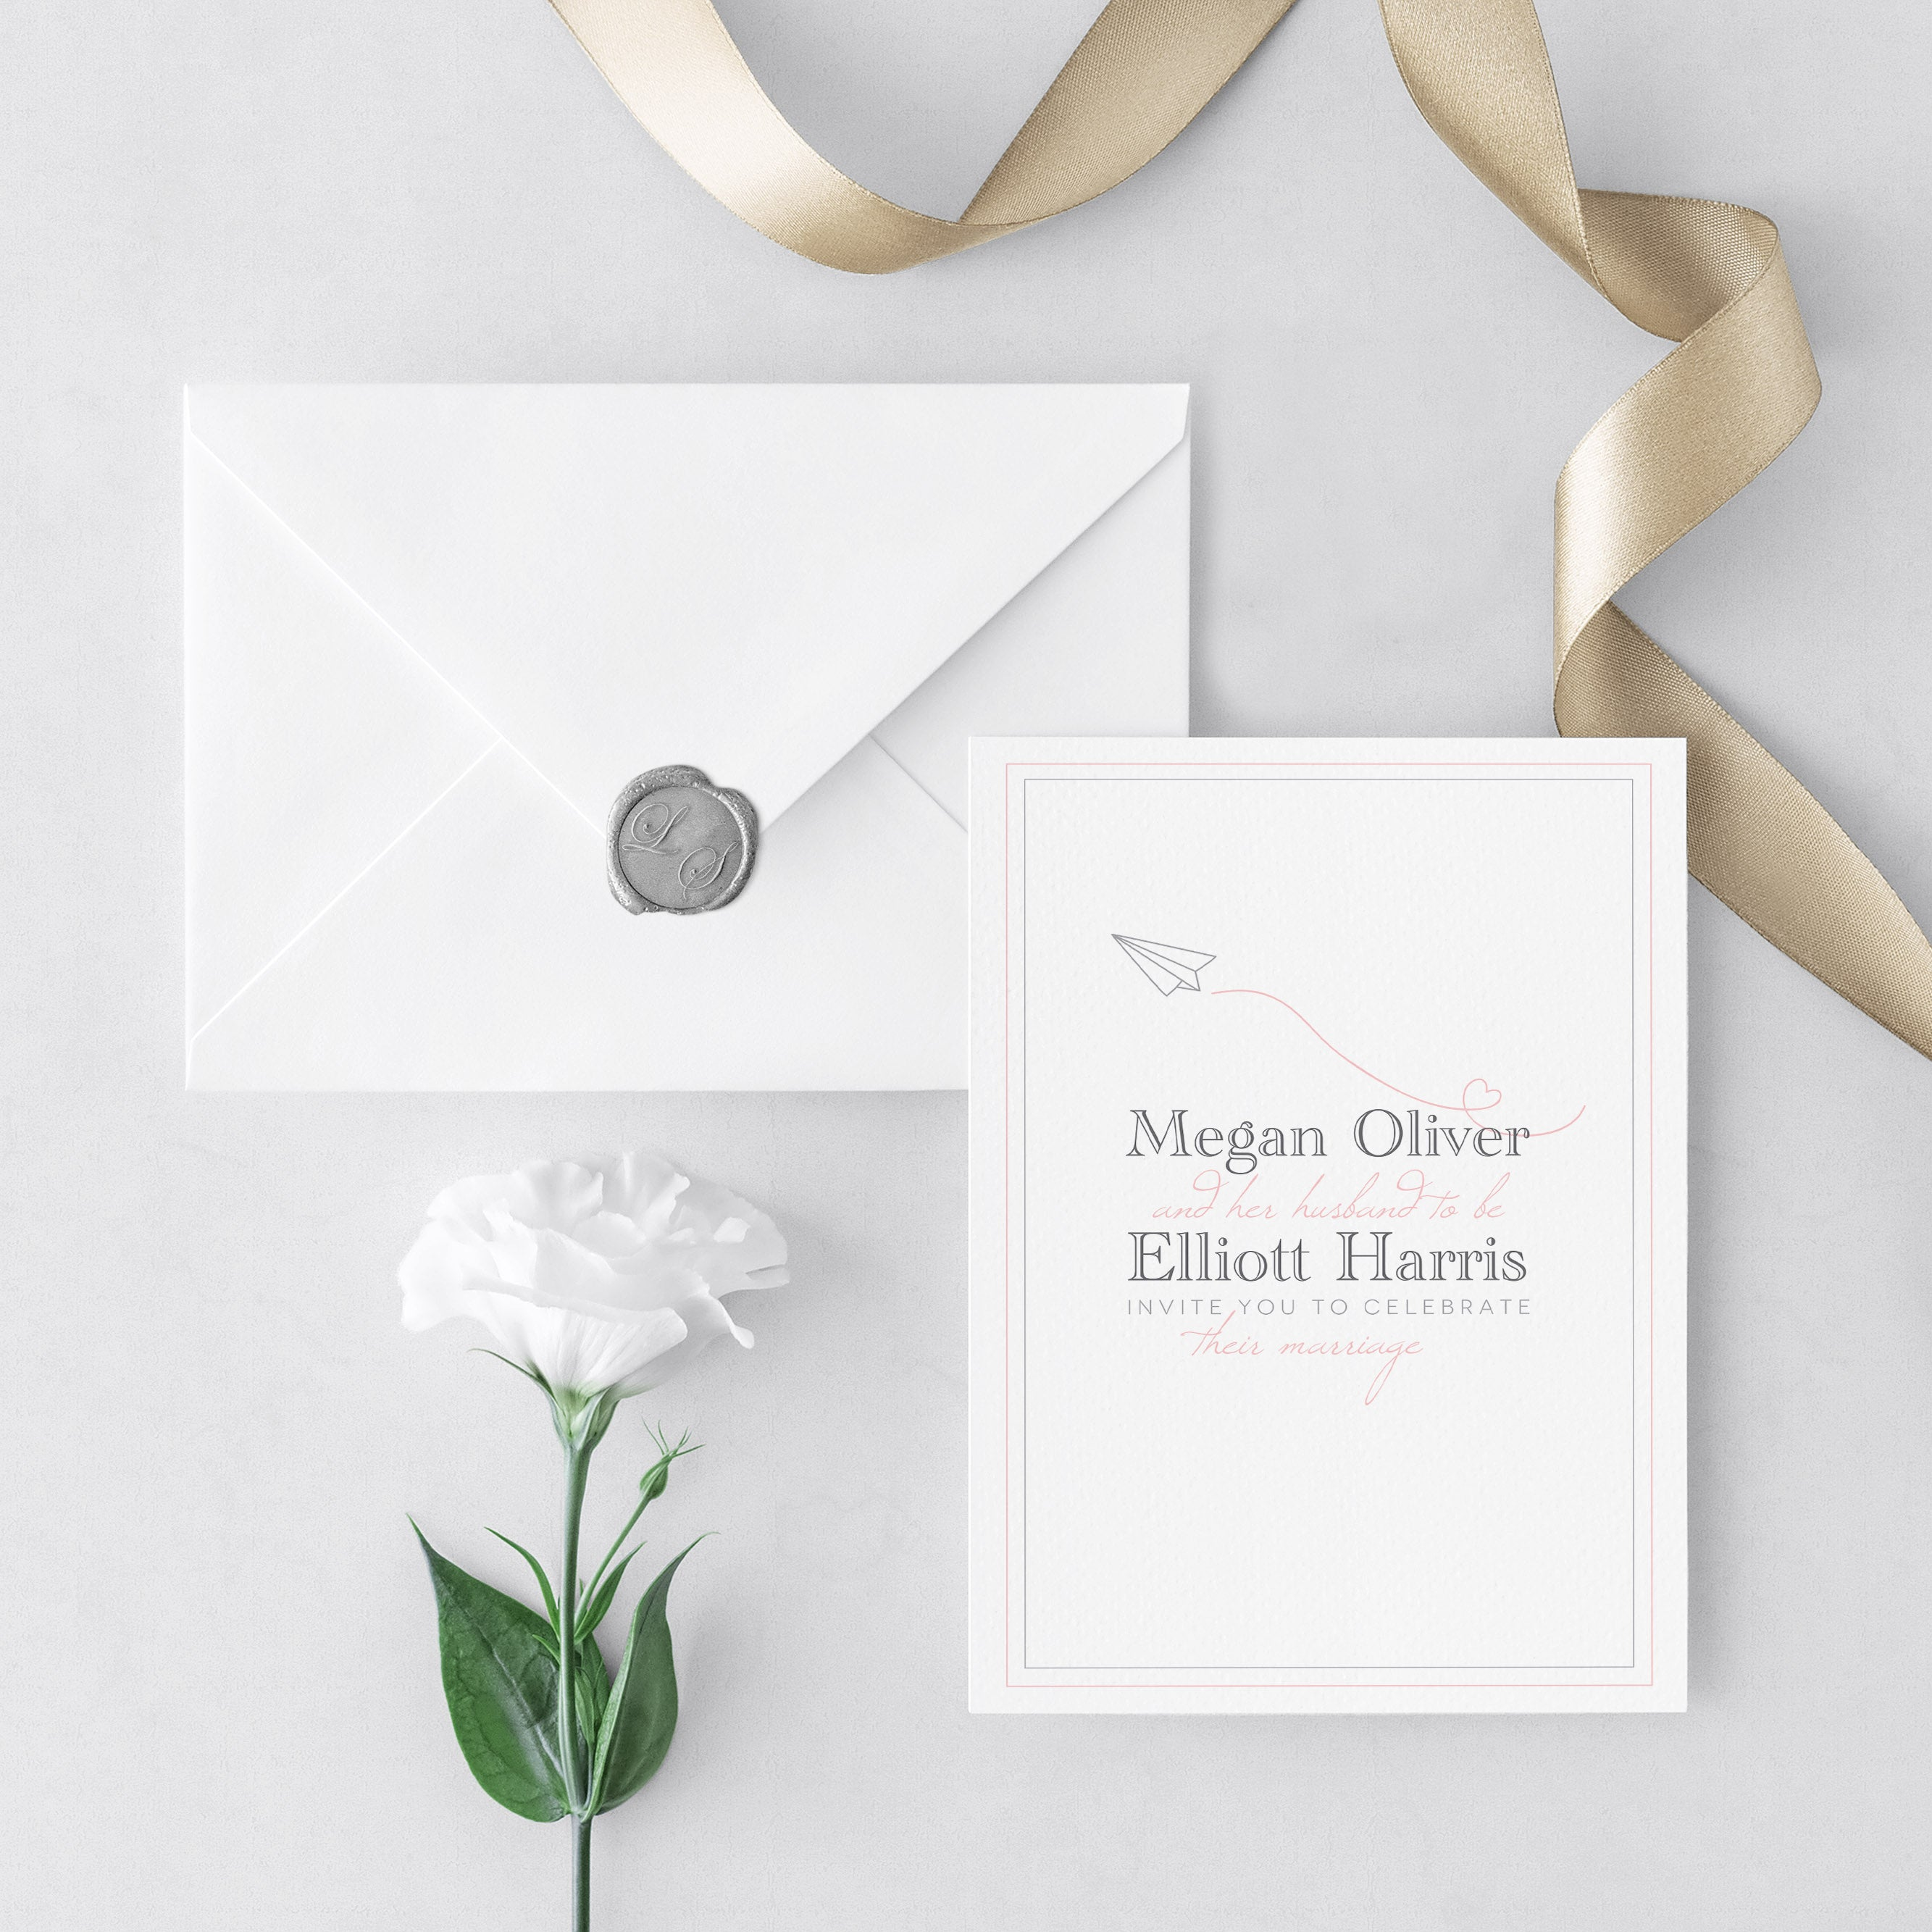 Catch Me If You Can Wedding Invitations – Made By Lauren